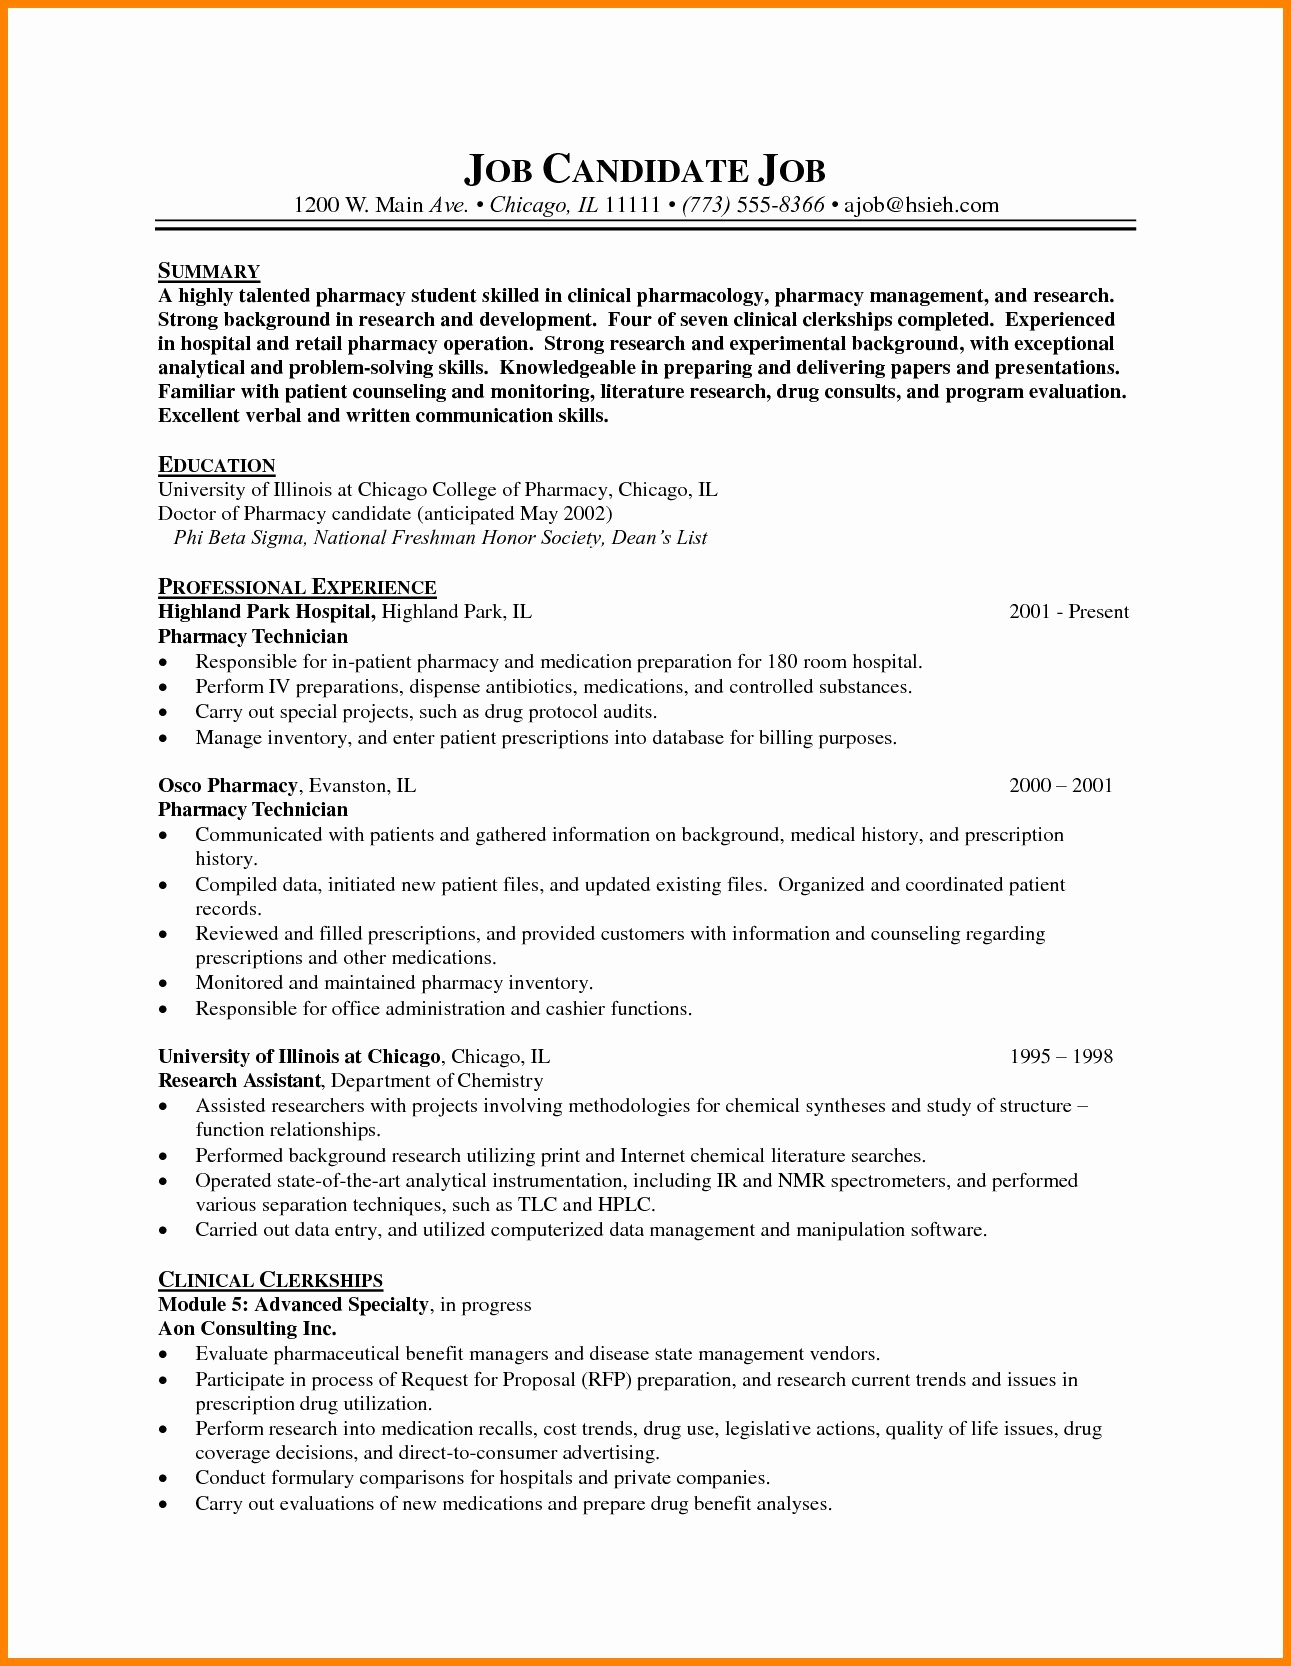 desktop support resume example-Gallery of Technical Support Resume Sample Cover Letter Resume Template Luxury Resume Examples 0d Good Looking 15-a